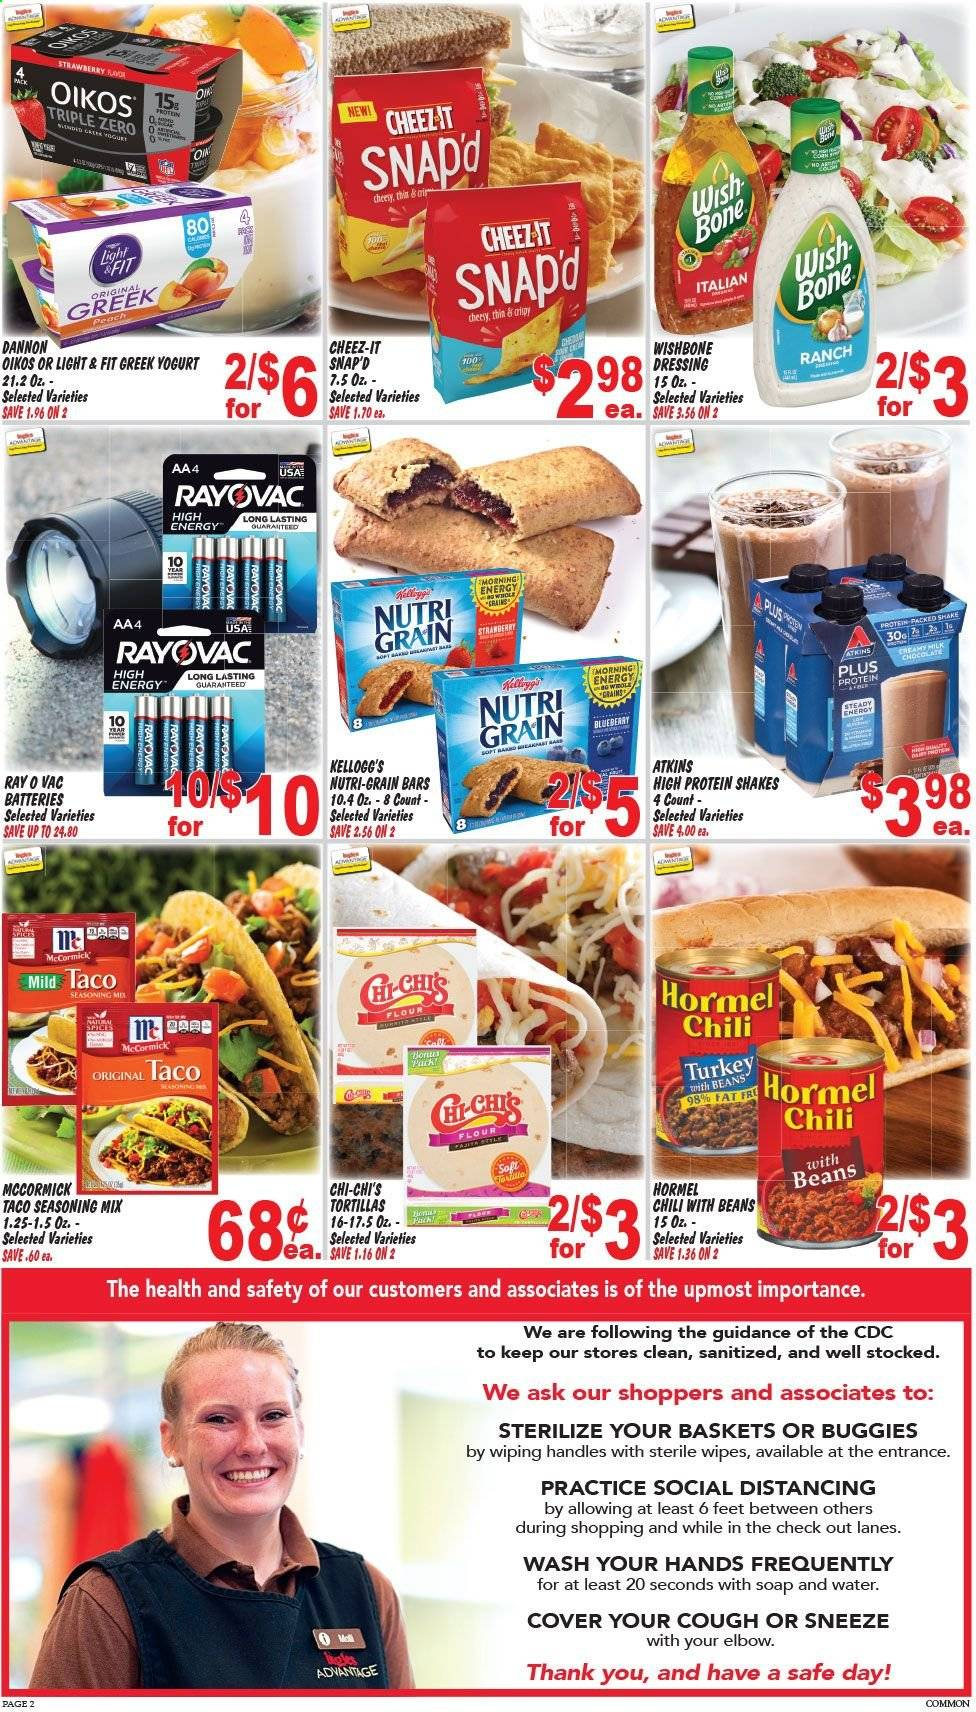 Ingles Flyer  - 04.22.2020 - 04.28.2020. Page 2.